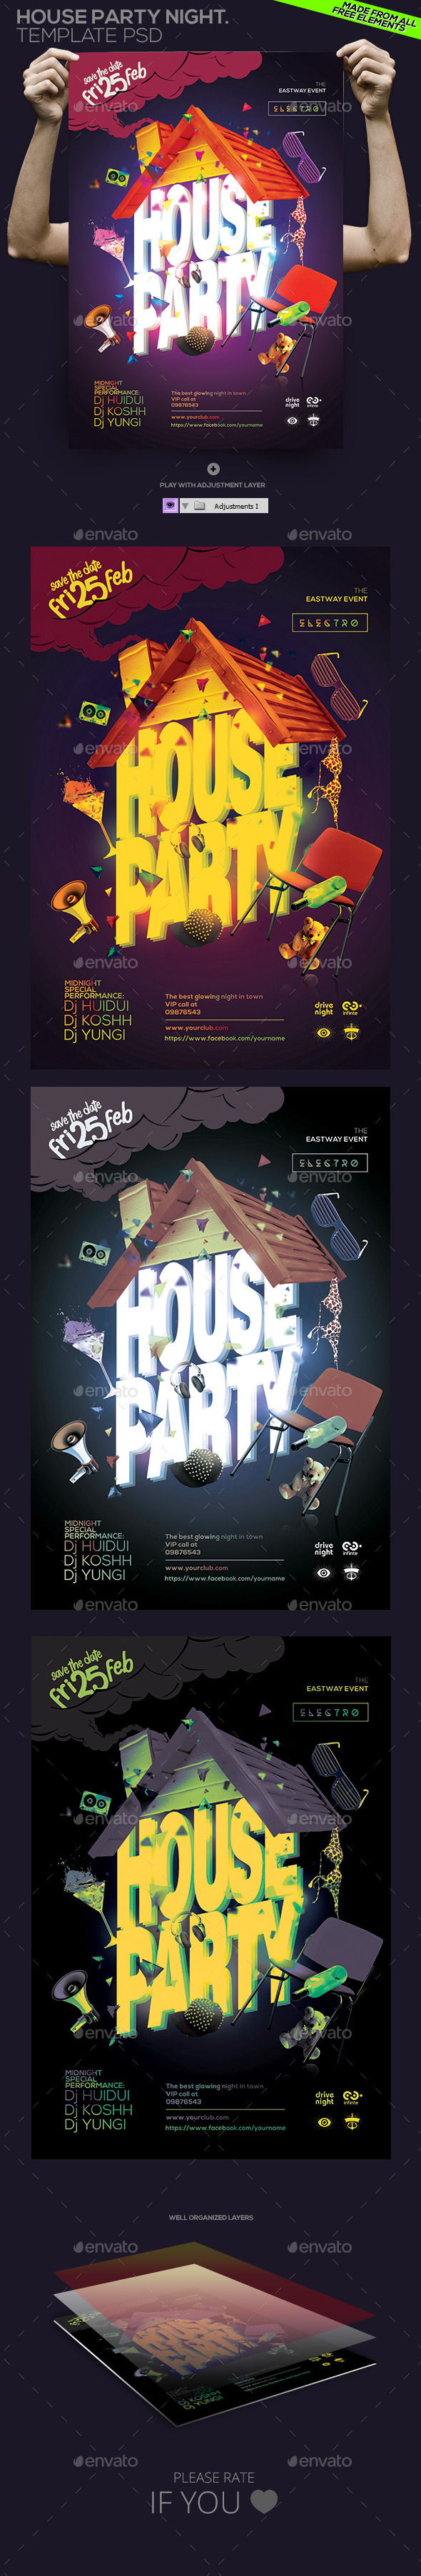 House Party Night Template - Clubs & Parties Events